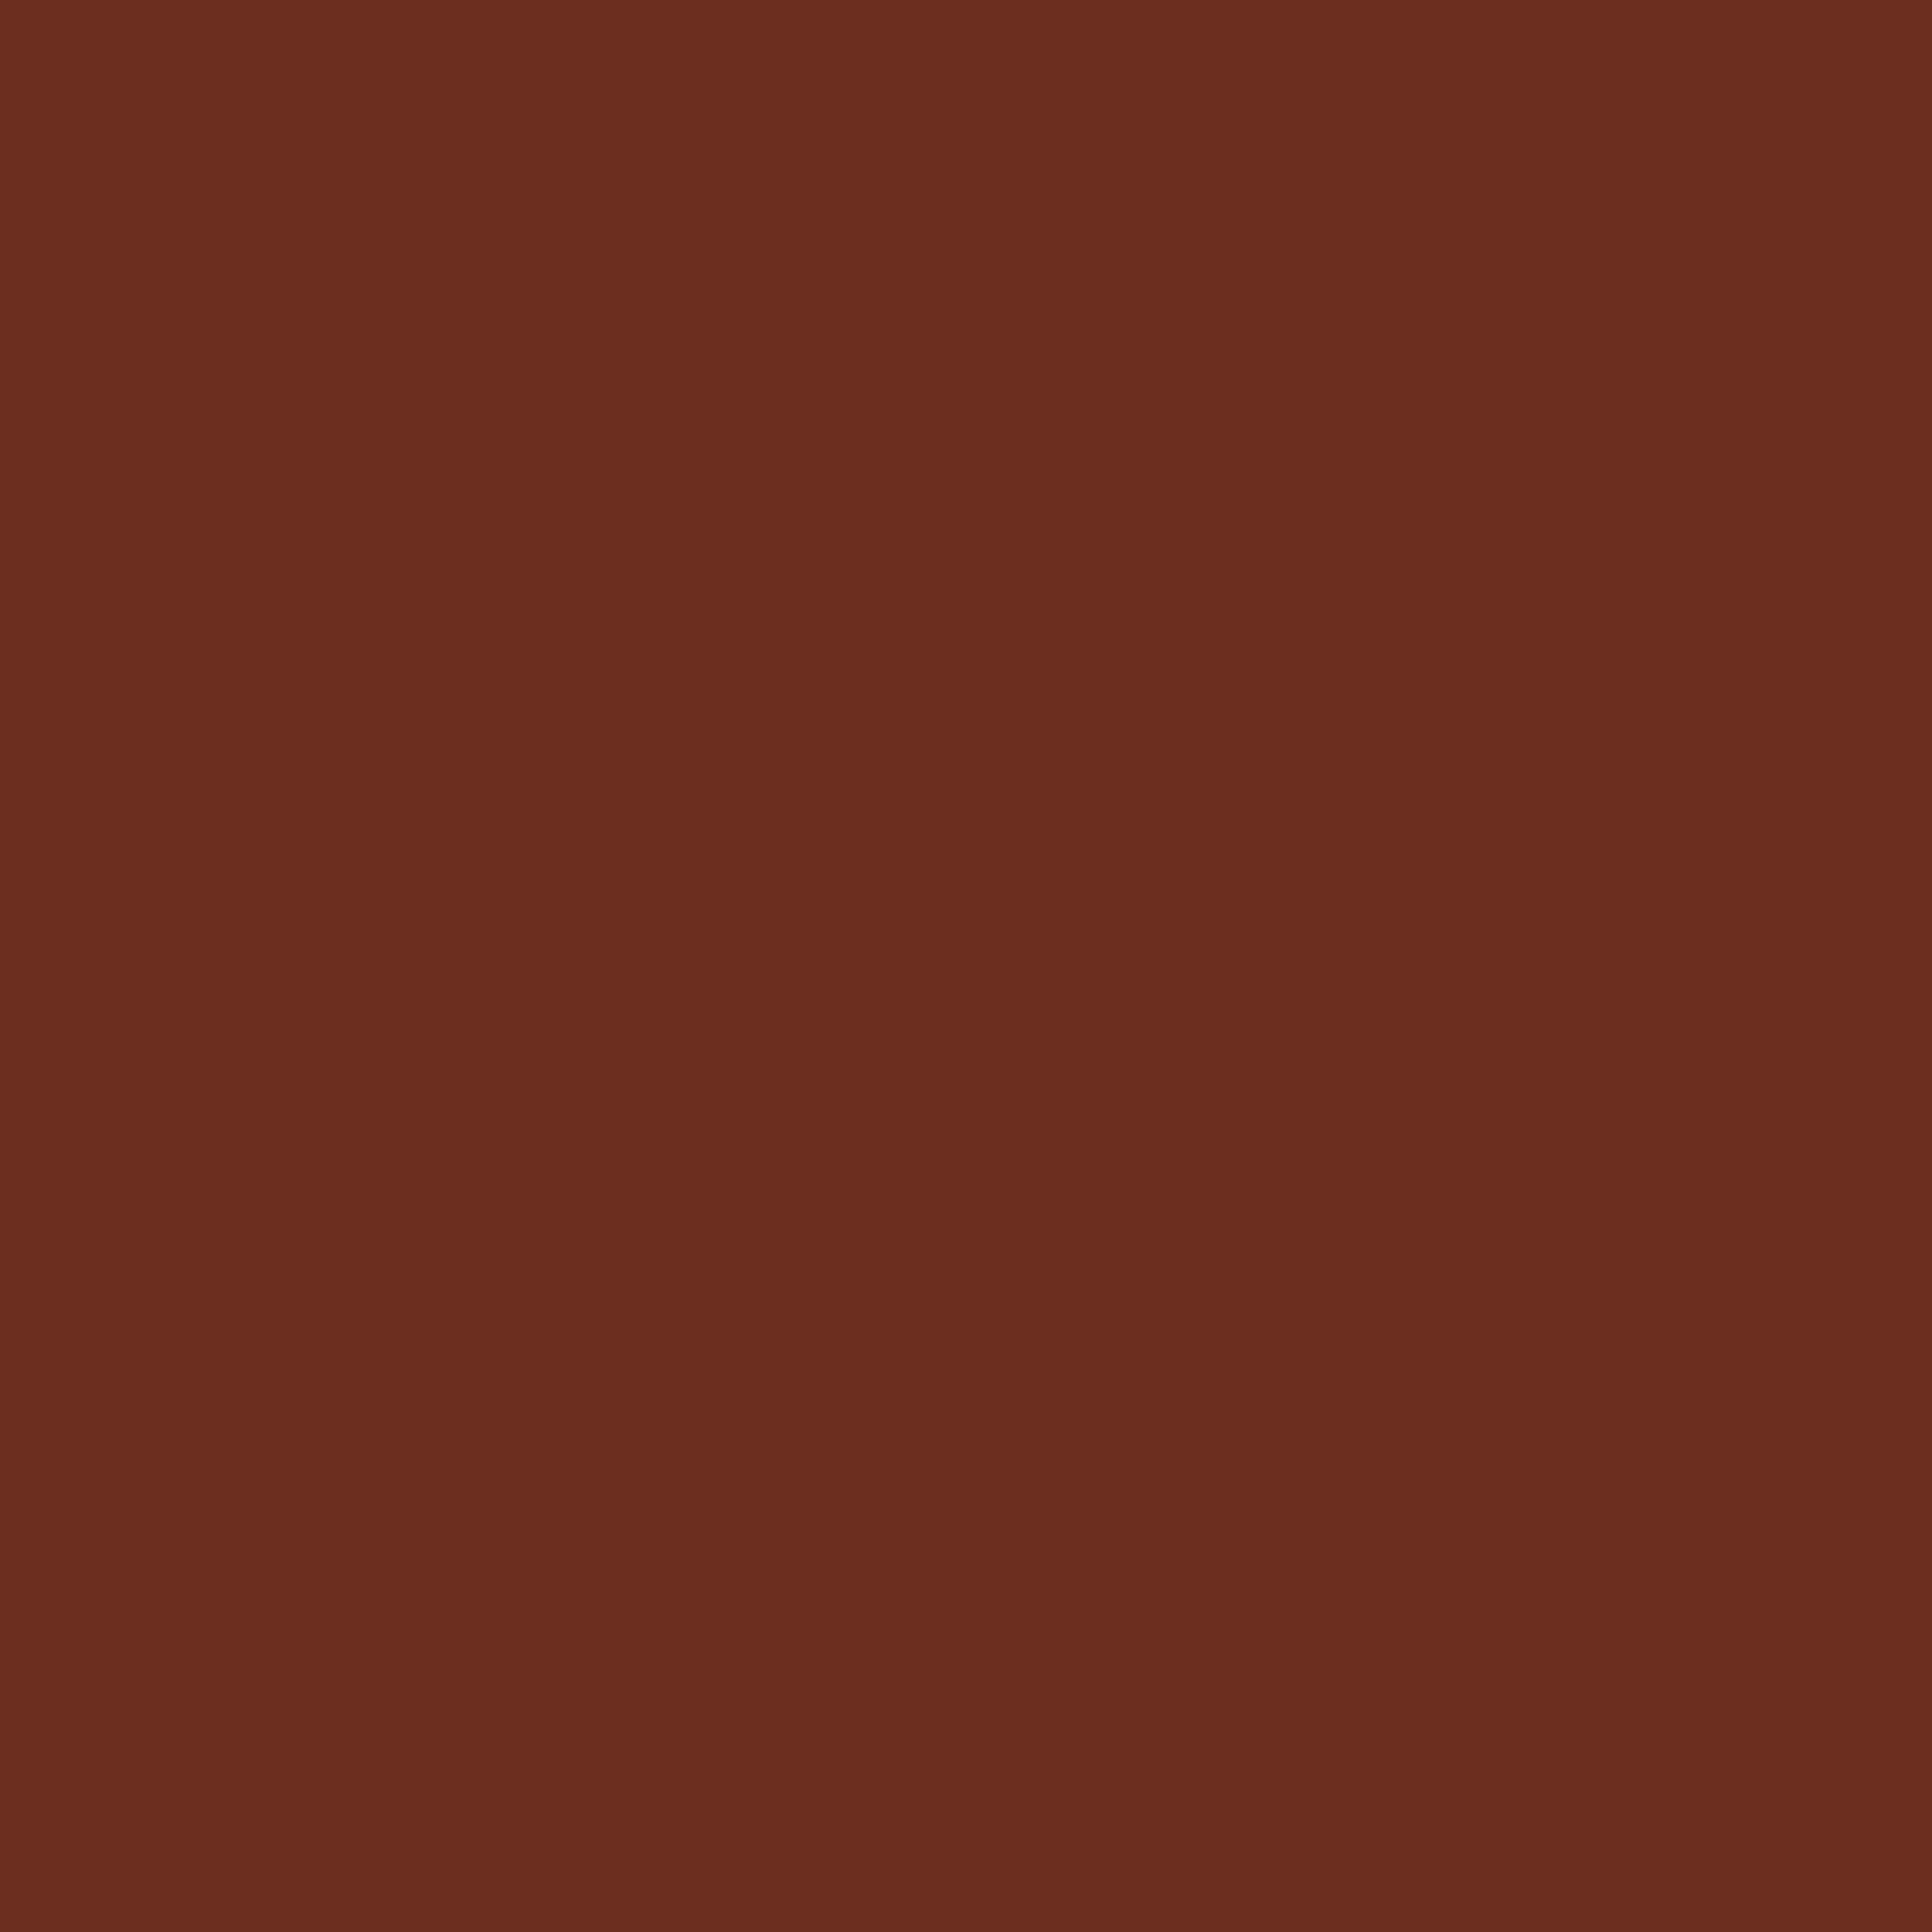 2732x2732 Liver Organ Solid Color Background 2732x2732